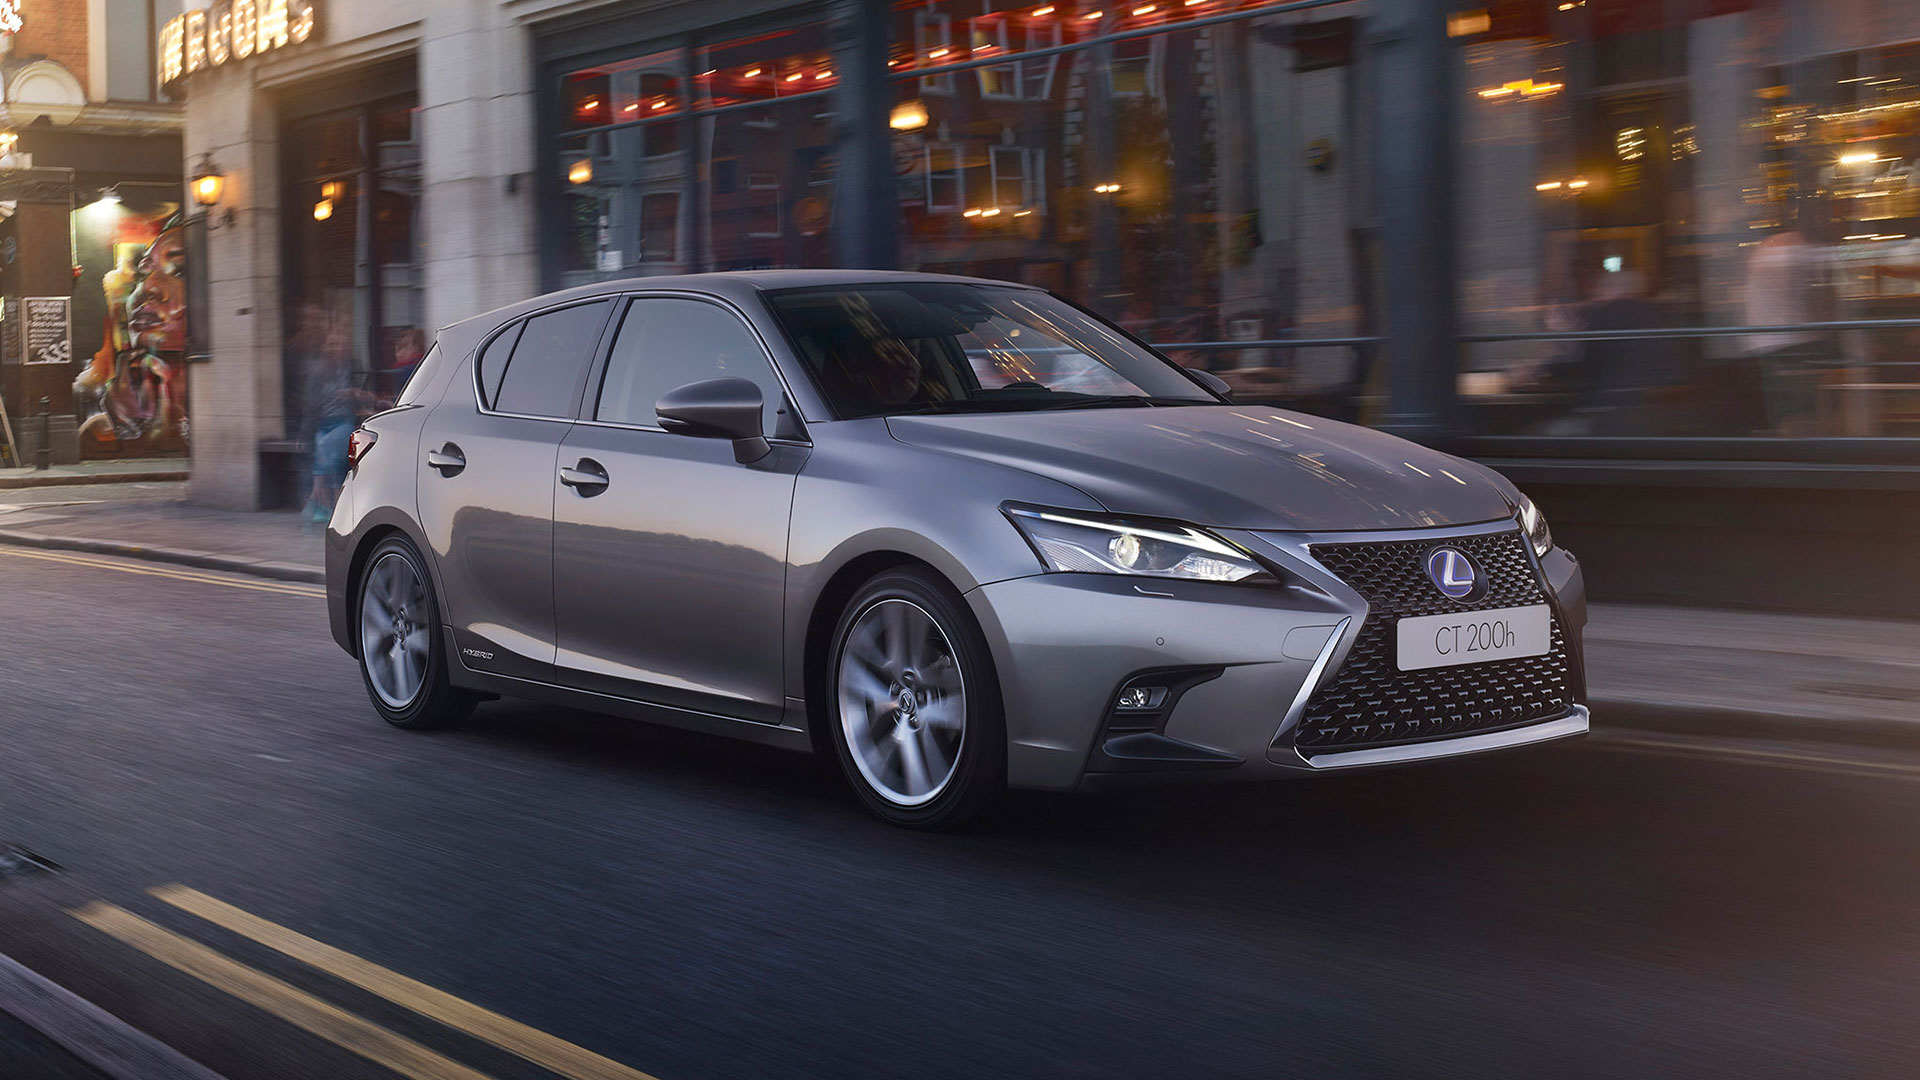 2018 lexus ct 200h my18 gallery 025 exterior